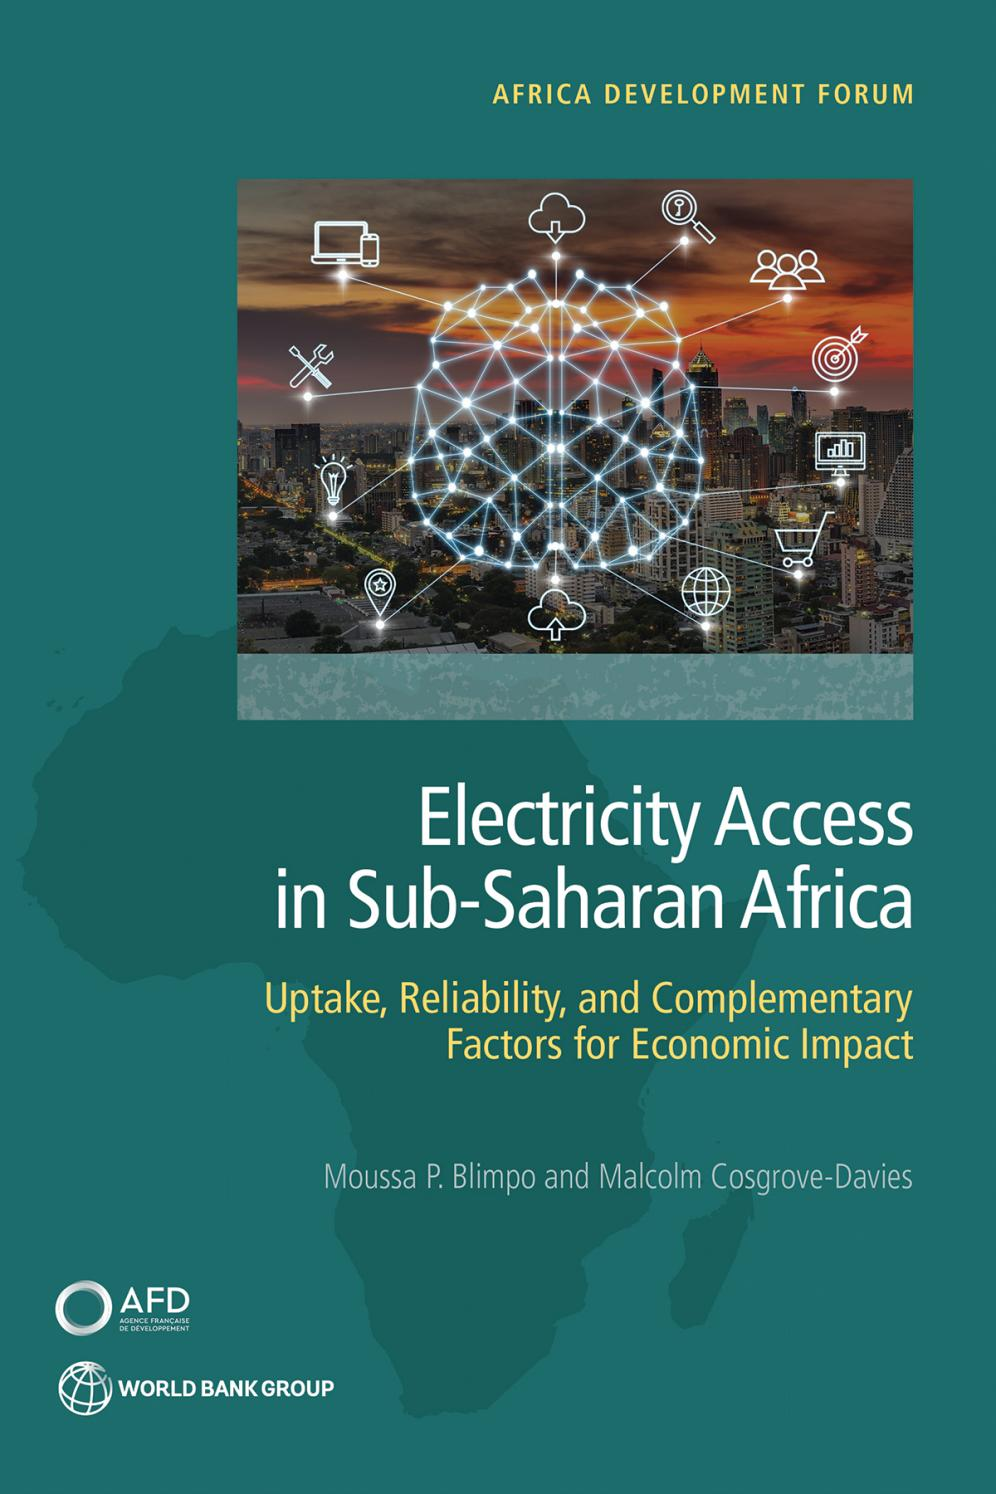 Electricity Access in Sub-Saharan Africa: Uptake, Reliability and Complimentary Factors for Economic